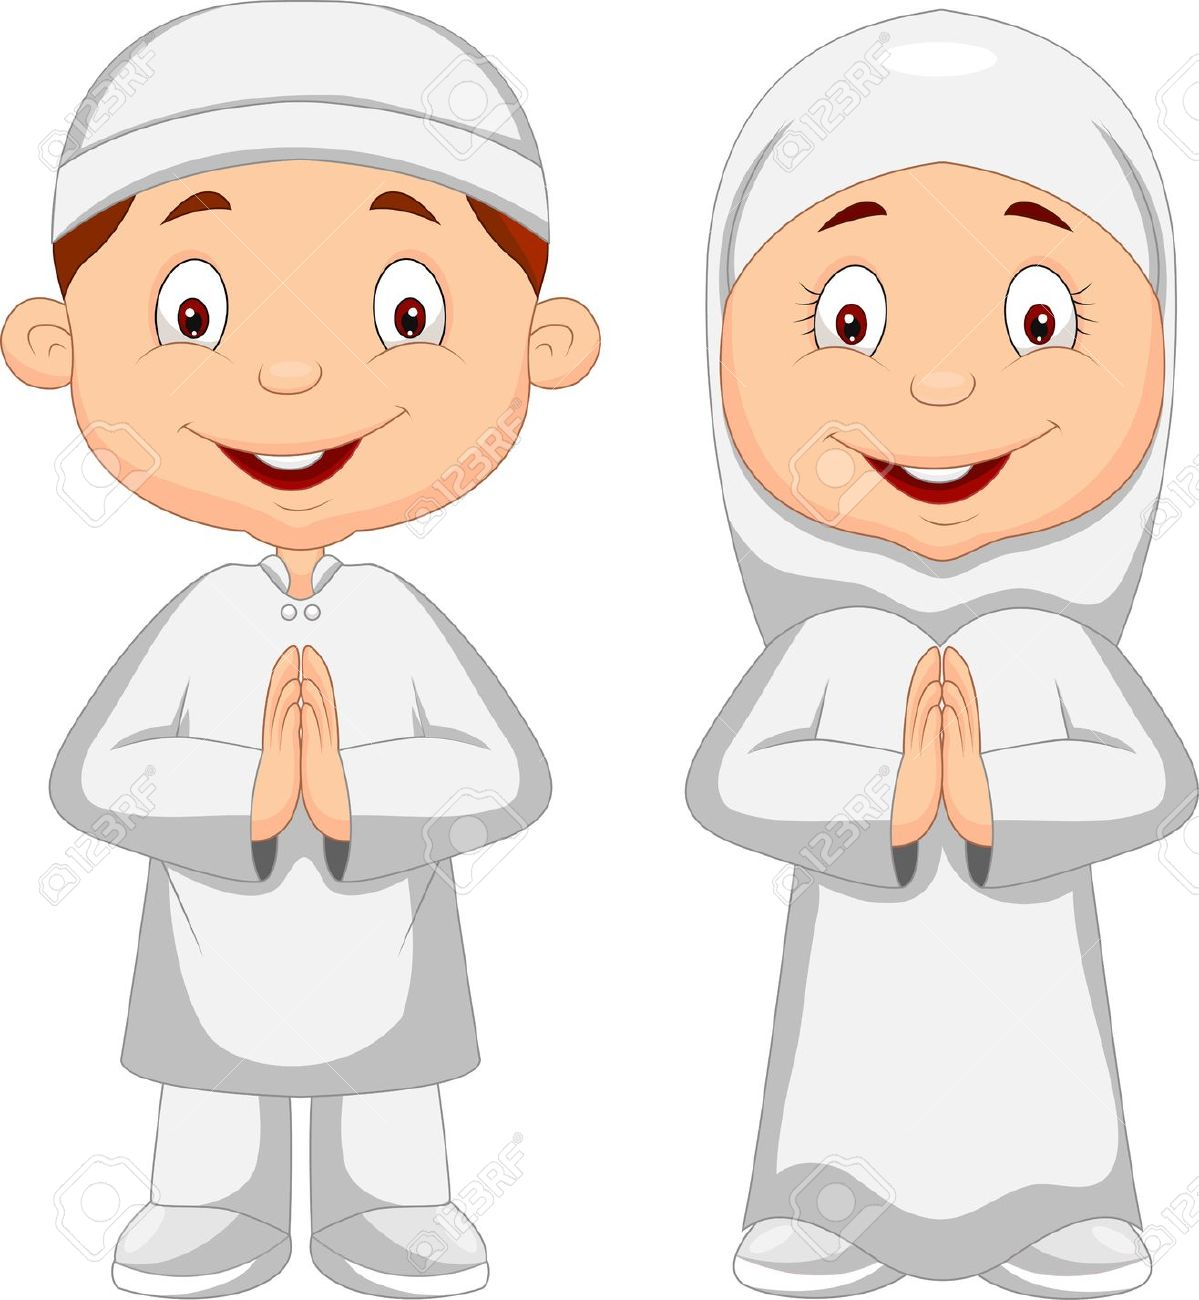 Muslim Kid Cartoon Royalty Free Cliparts, Vectors, And Stock.